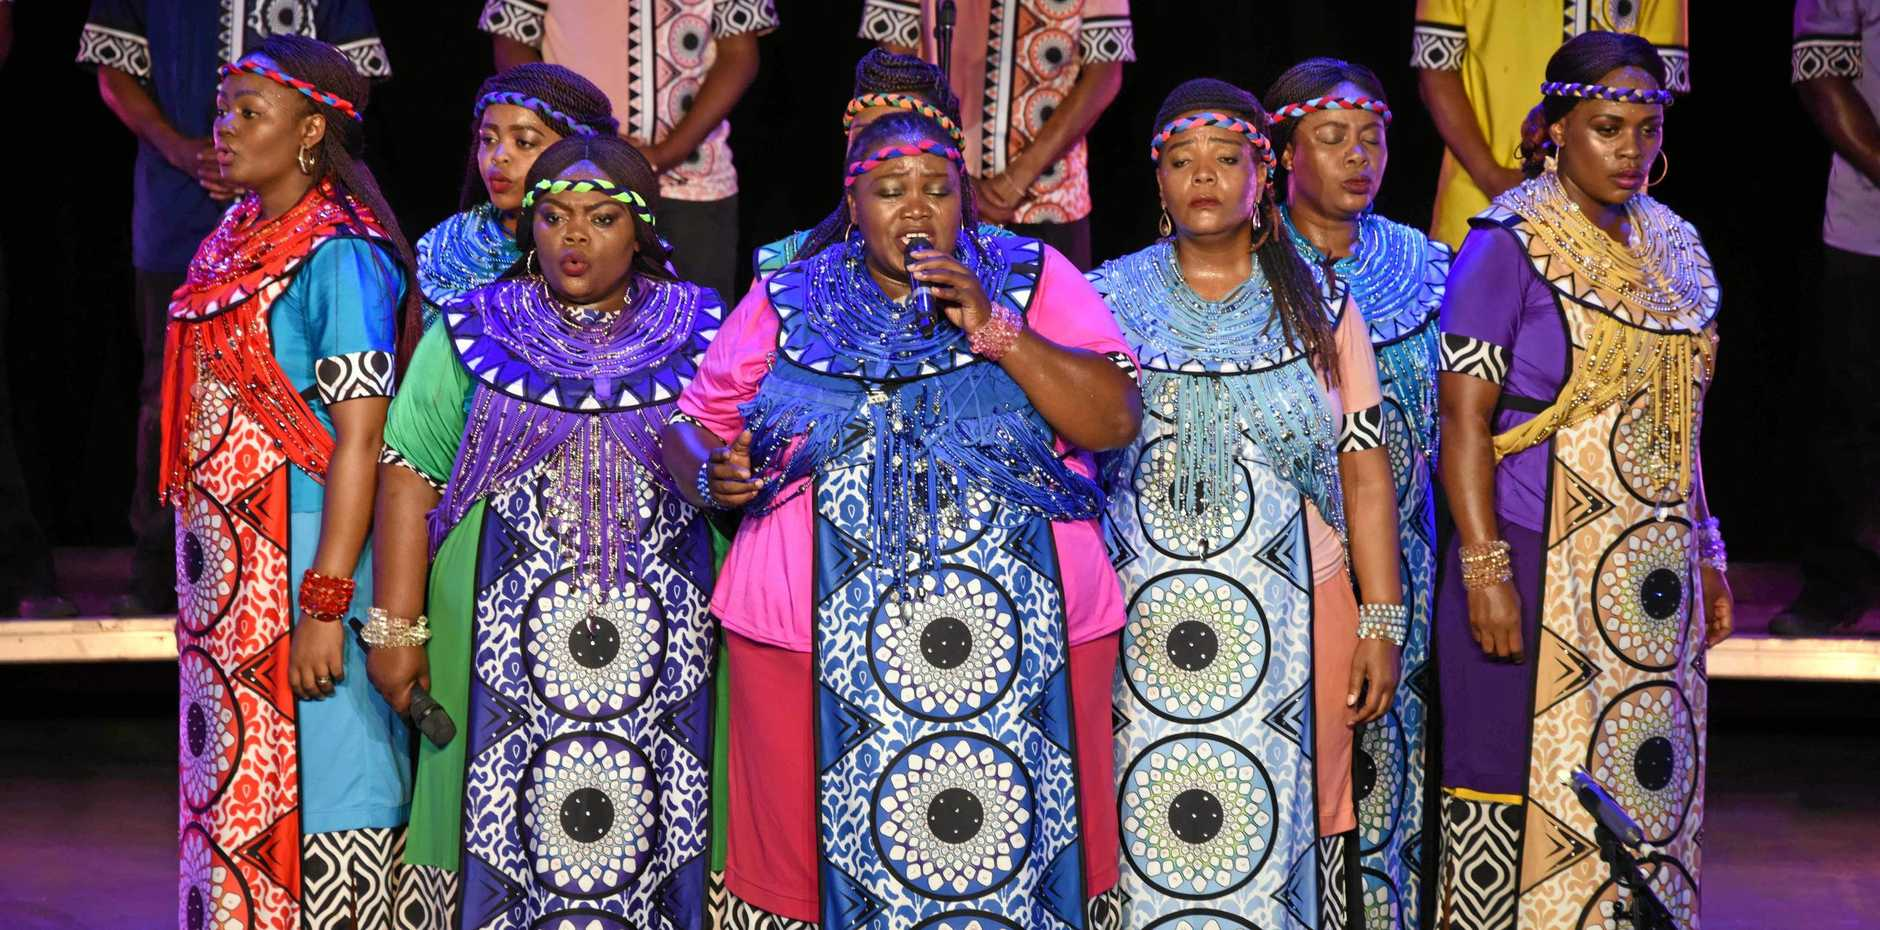 PRAISE BE: The Soweto Gospel Choir's rich harmonies are coming to the Brolga.